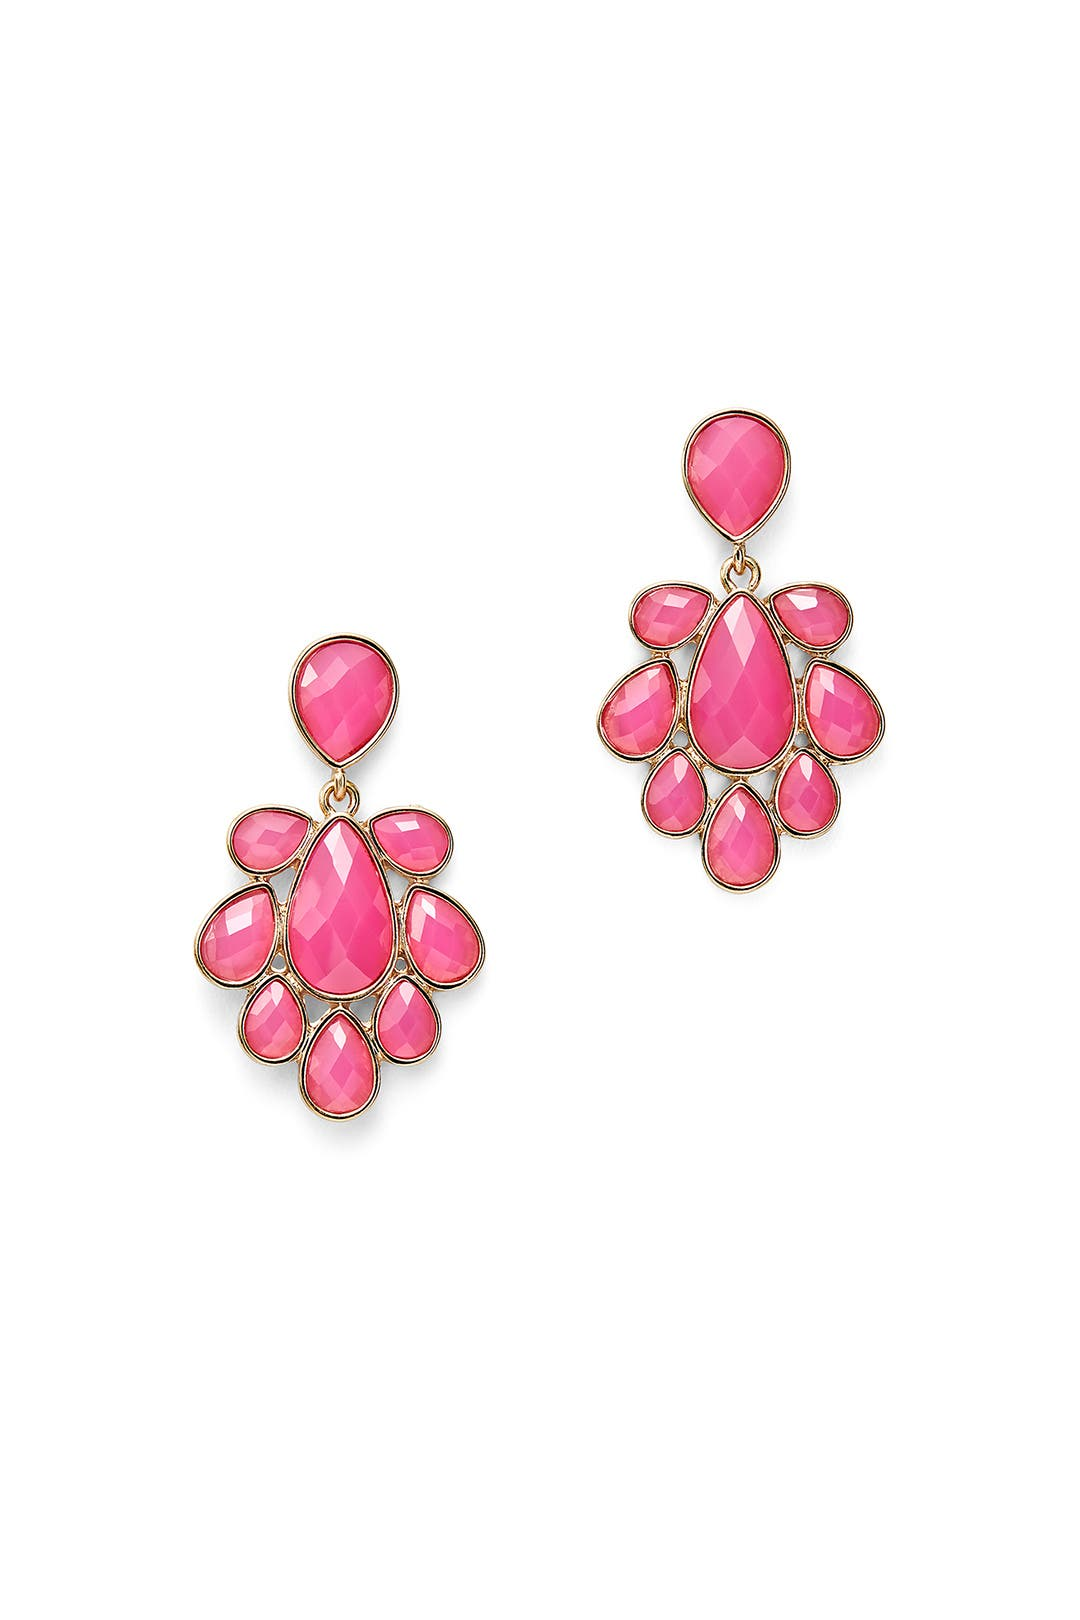 Berry Rose Drops by Slate & Willow Accessories